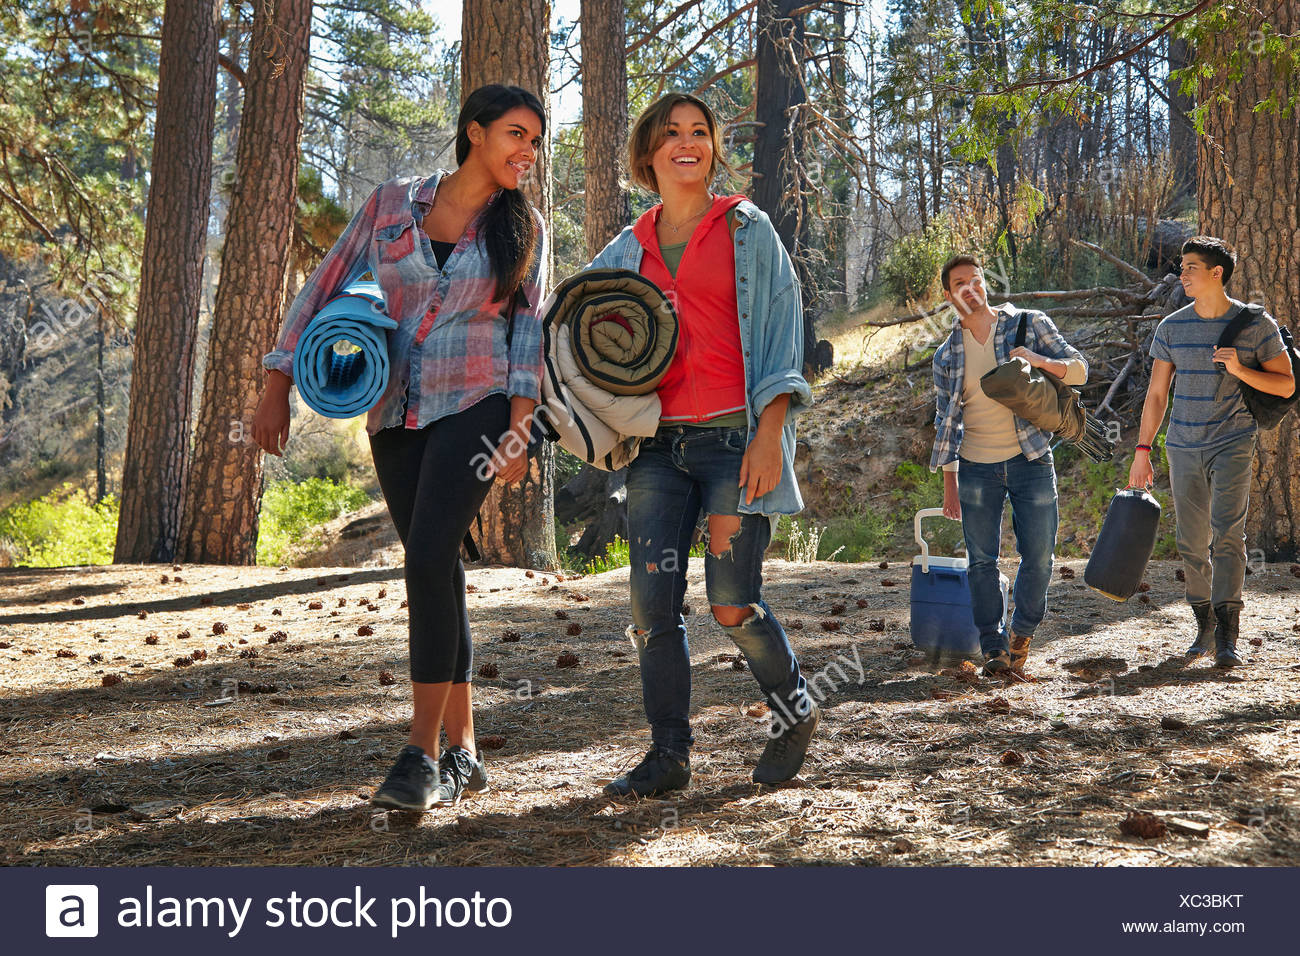 Four young adult friends walking in forest with camping equipment, Los Angeles, California, USA - Stock Image